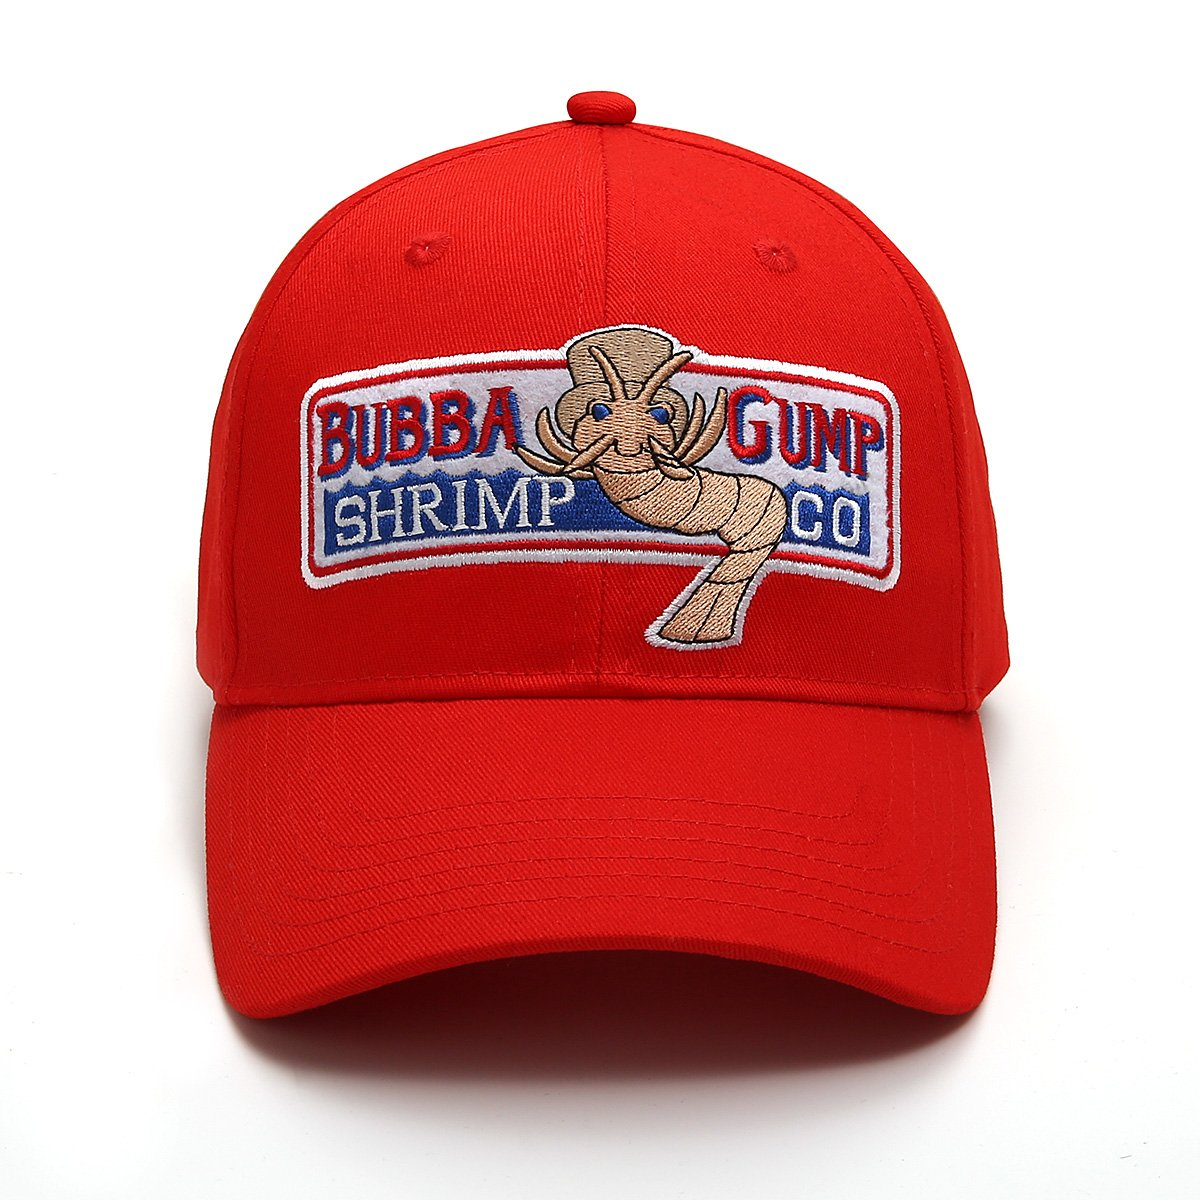 Adjustable Bubba Gump Baseball Cap Shrimp Co. Embroidered Hat (Red)